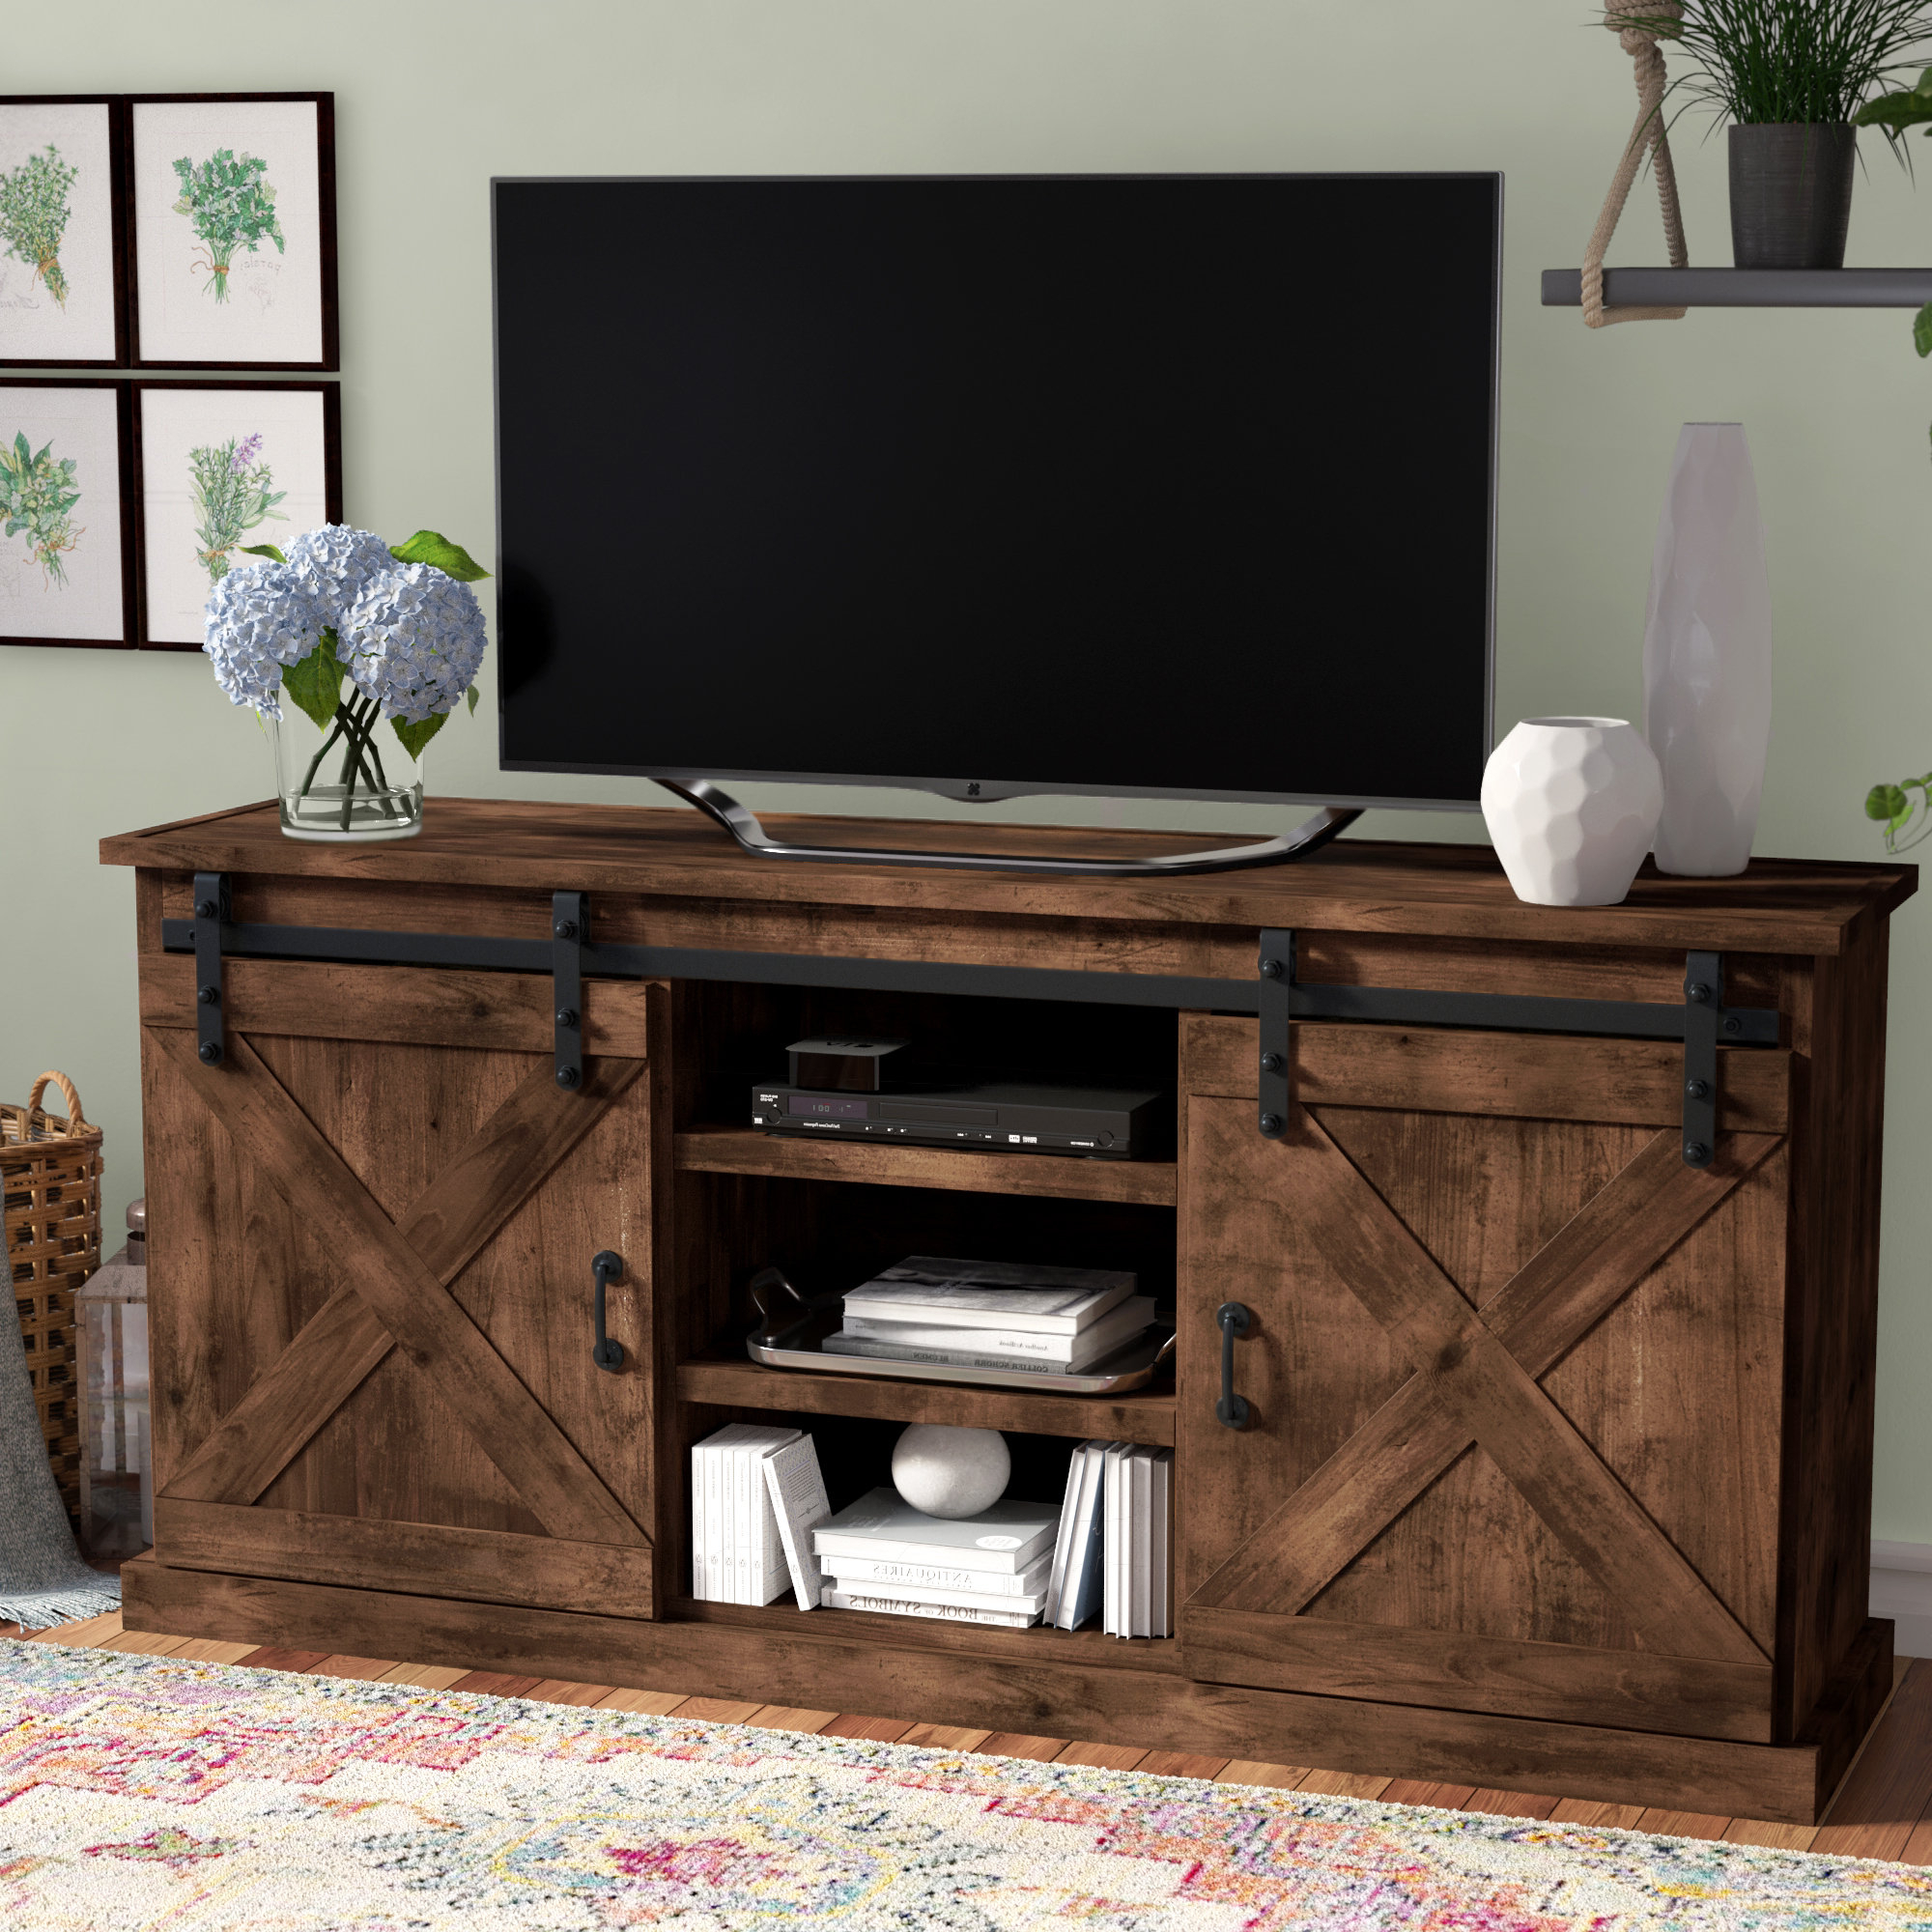 Laurel Foundry Modern Farmhouse Clair Tv Stand For Tvs Up To 66 For Casey Grey 66 Inch Tv Stands (View 4 of 20)